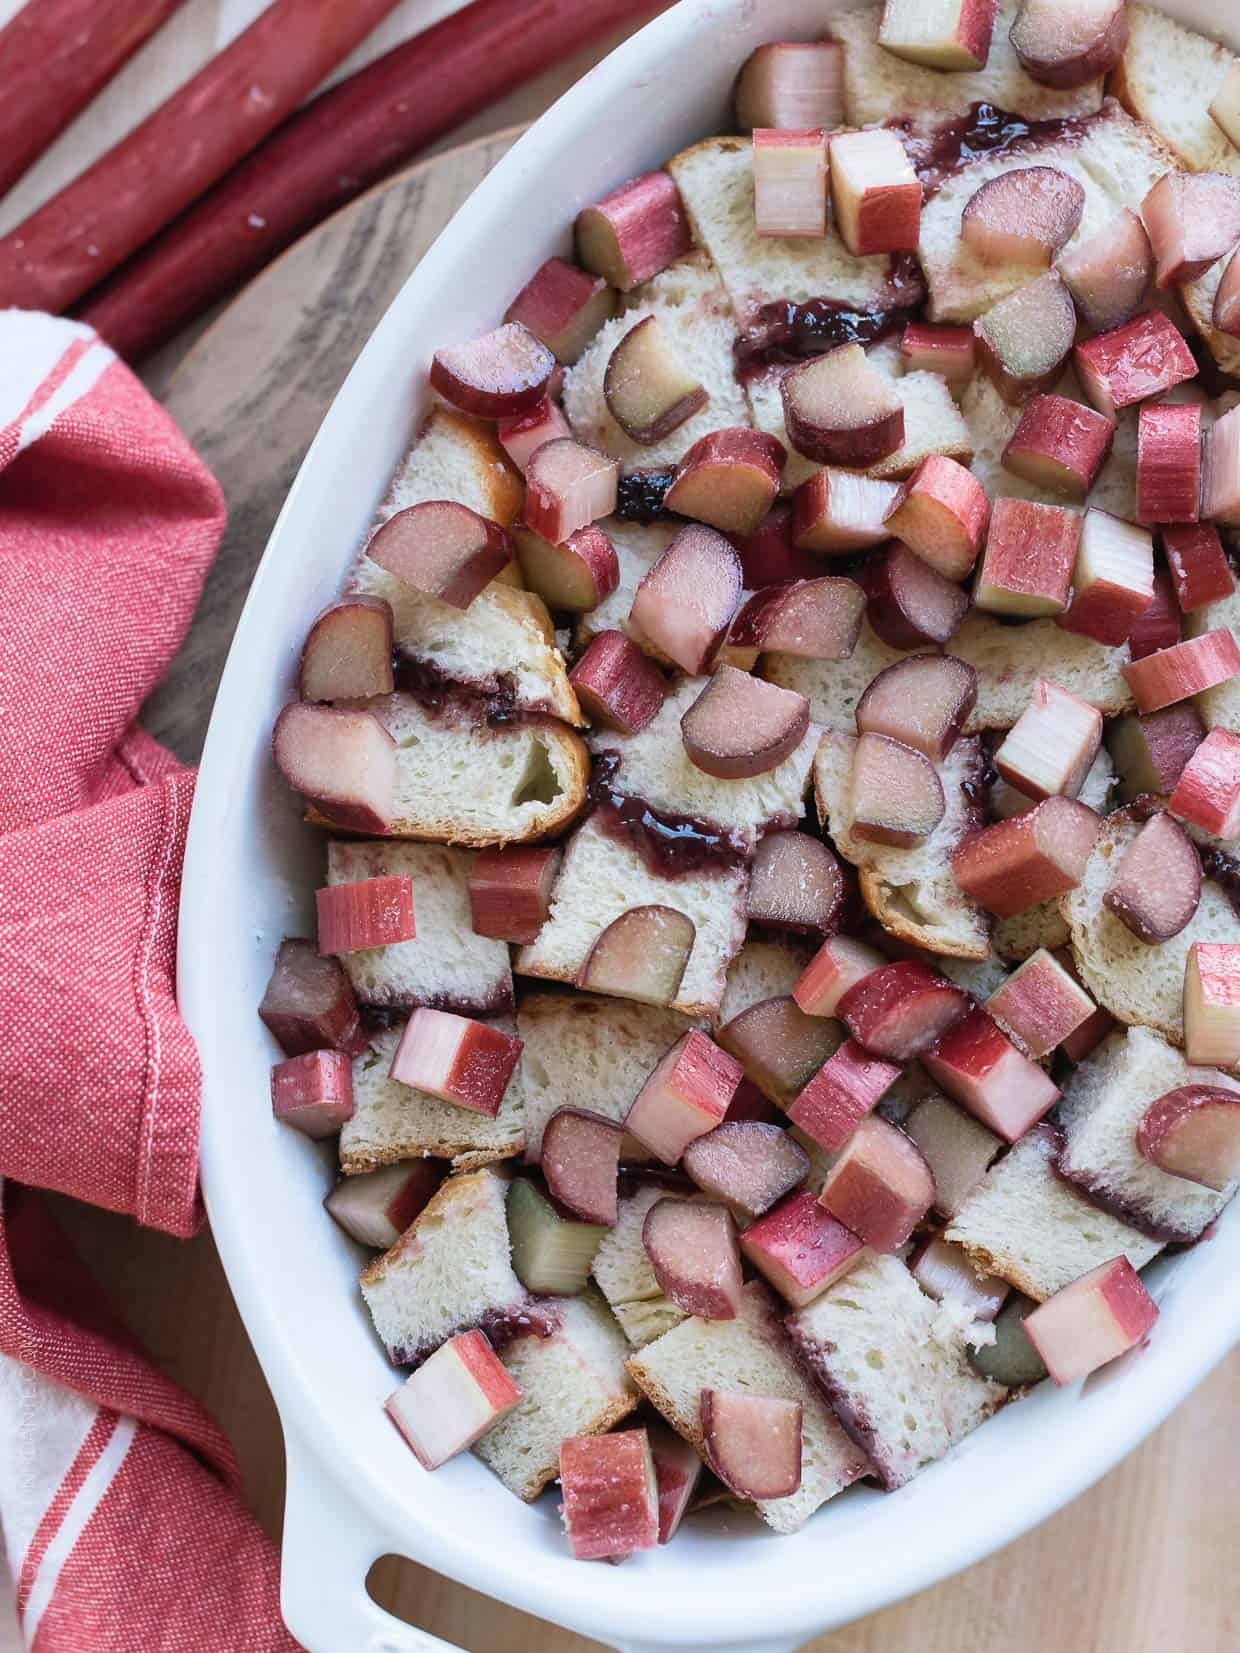 Chopped rhubarb layered with leftover brioche and strawberry jam for Rhubarb Bread Pudding.